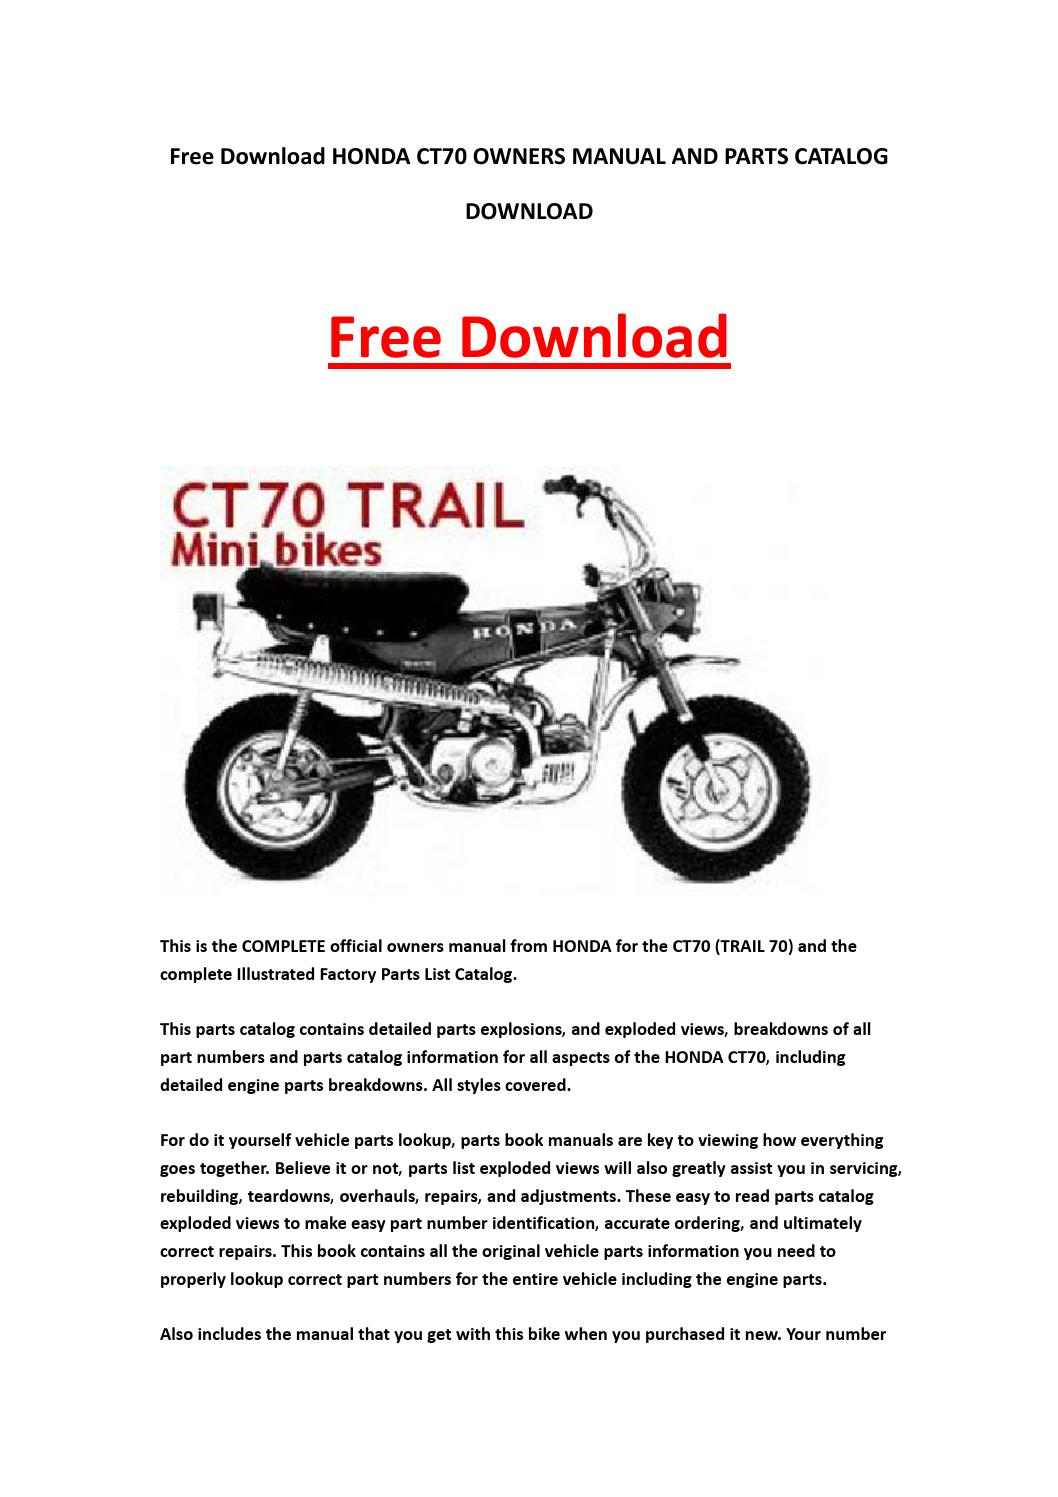 Honda Ct70 Owners Manual And Parts Catalog Download By